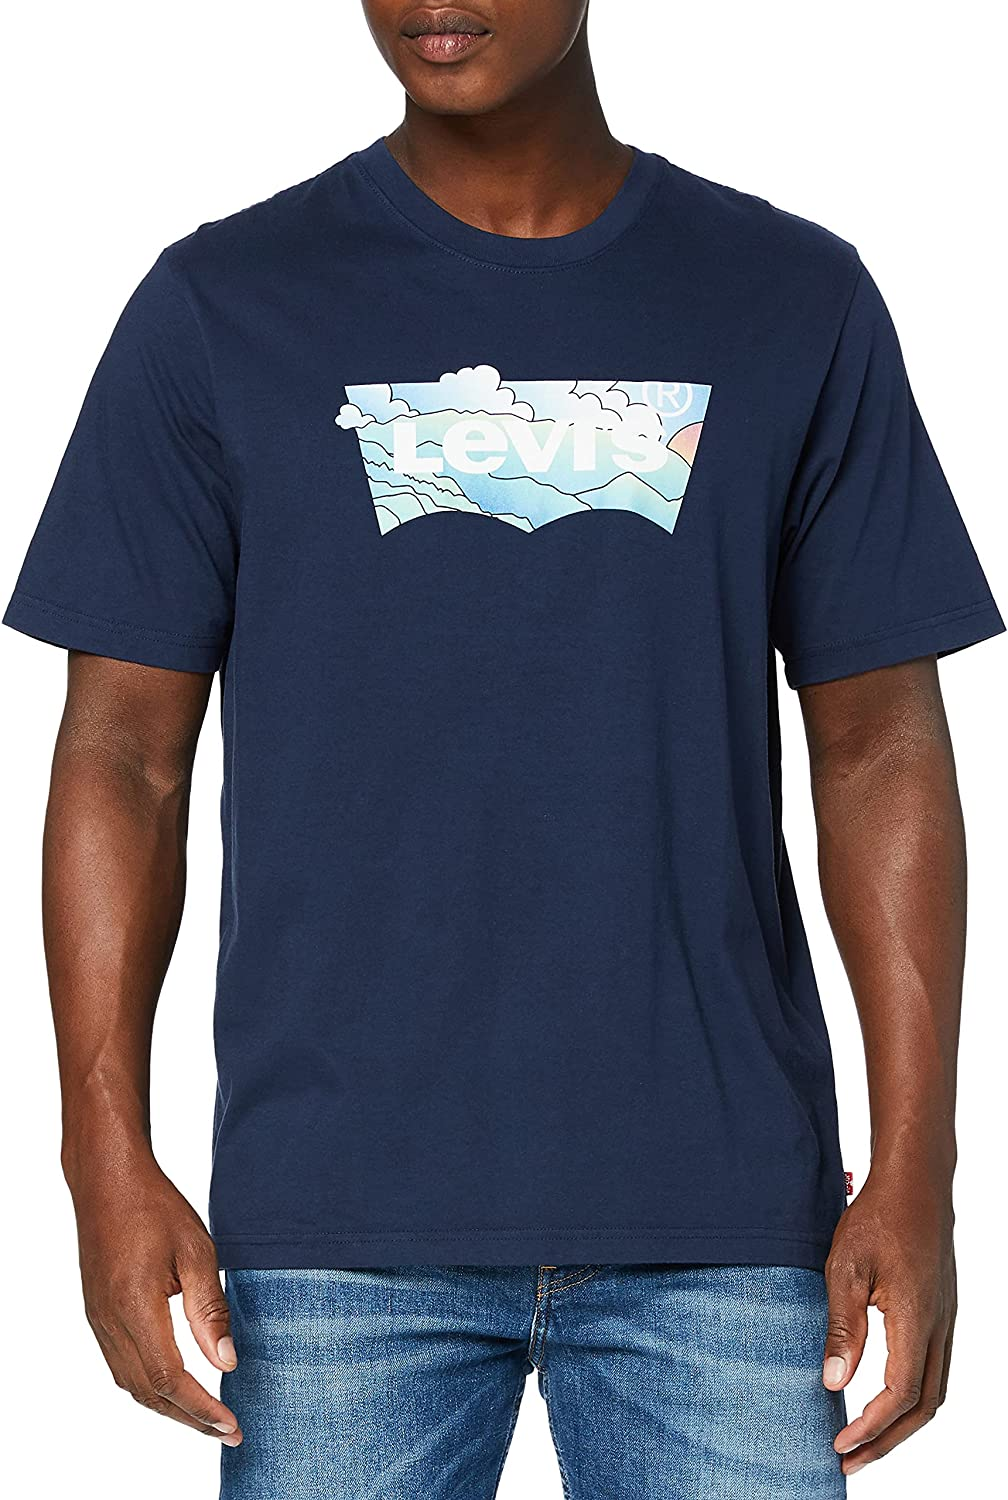 Levi's SS Relaxed Fit tee Camiseta para Hombre